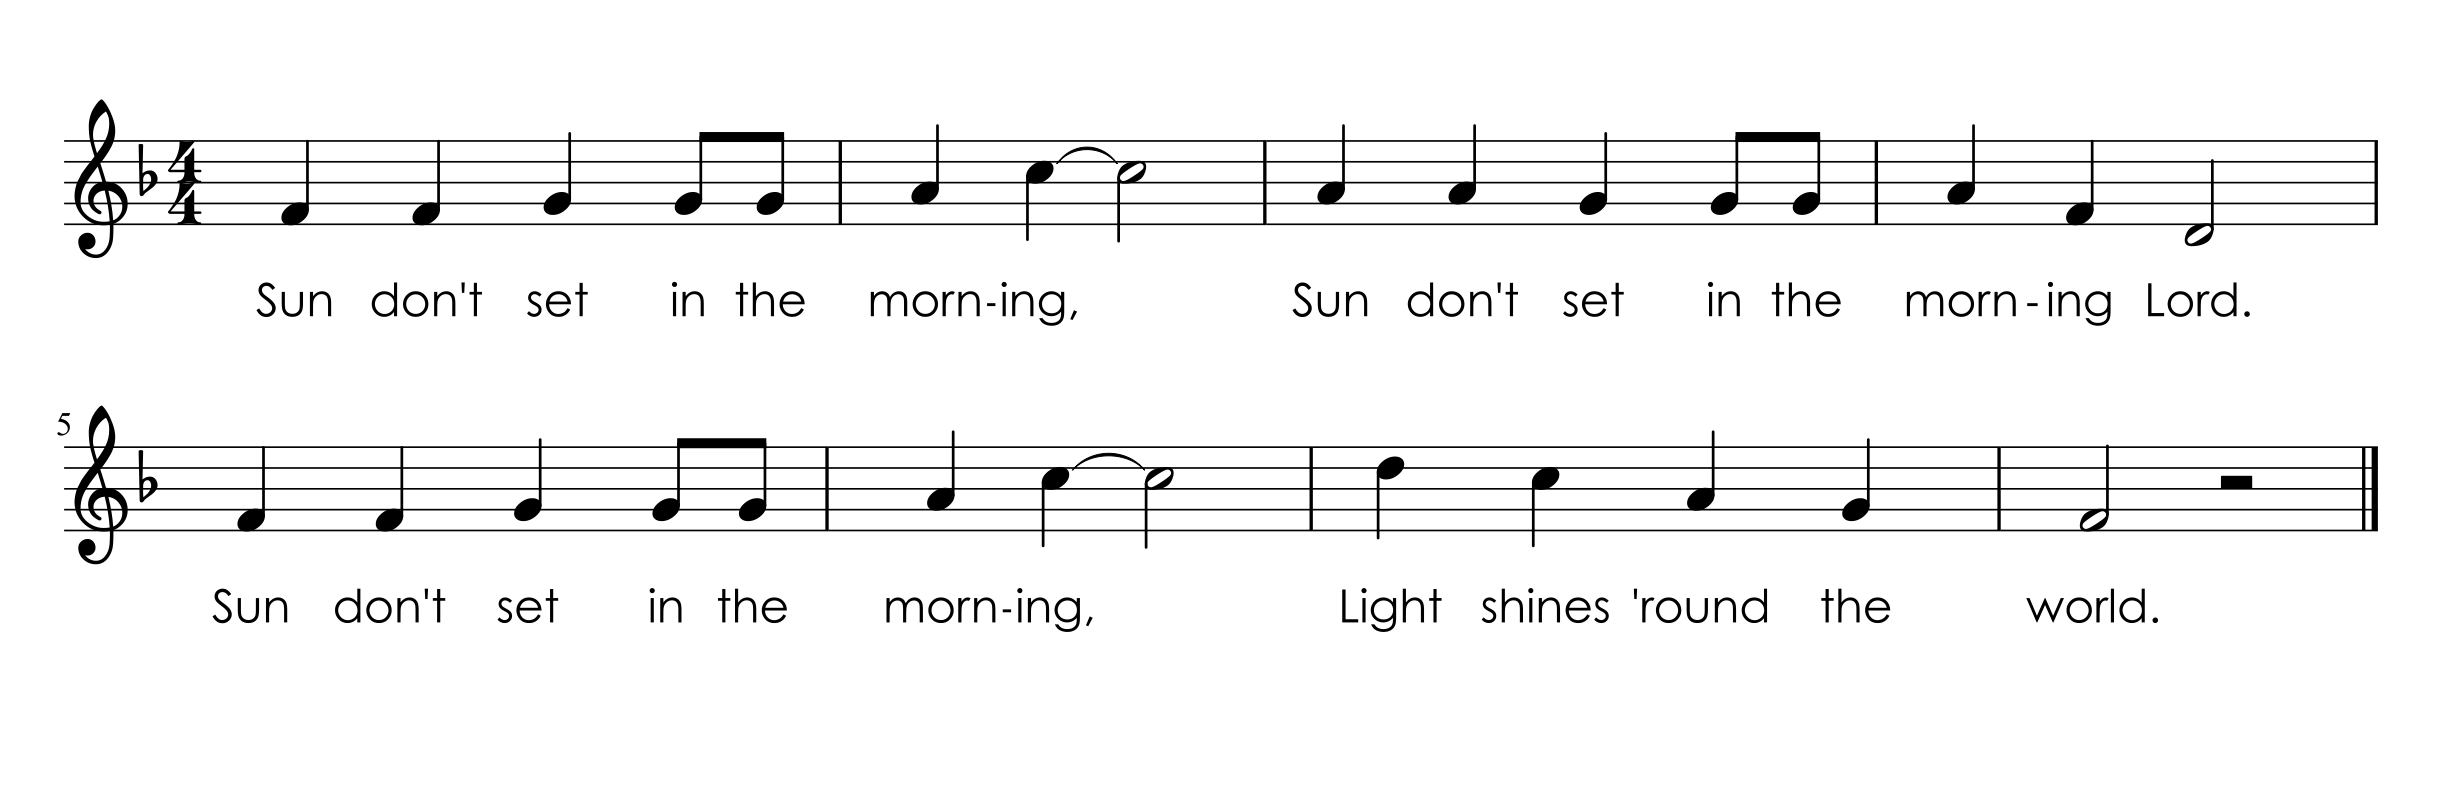 It Introduces Notes Below Do And We Create Motions For The Song That Represent What Makes Them Think About Mornings Its Also A Pretty Simple Song To